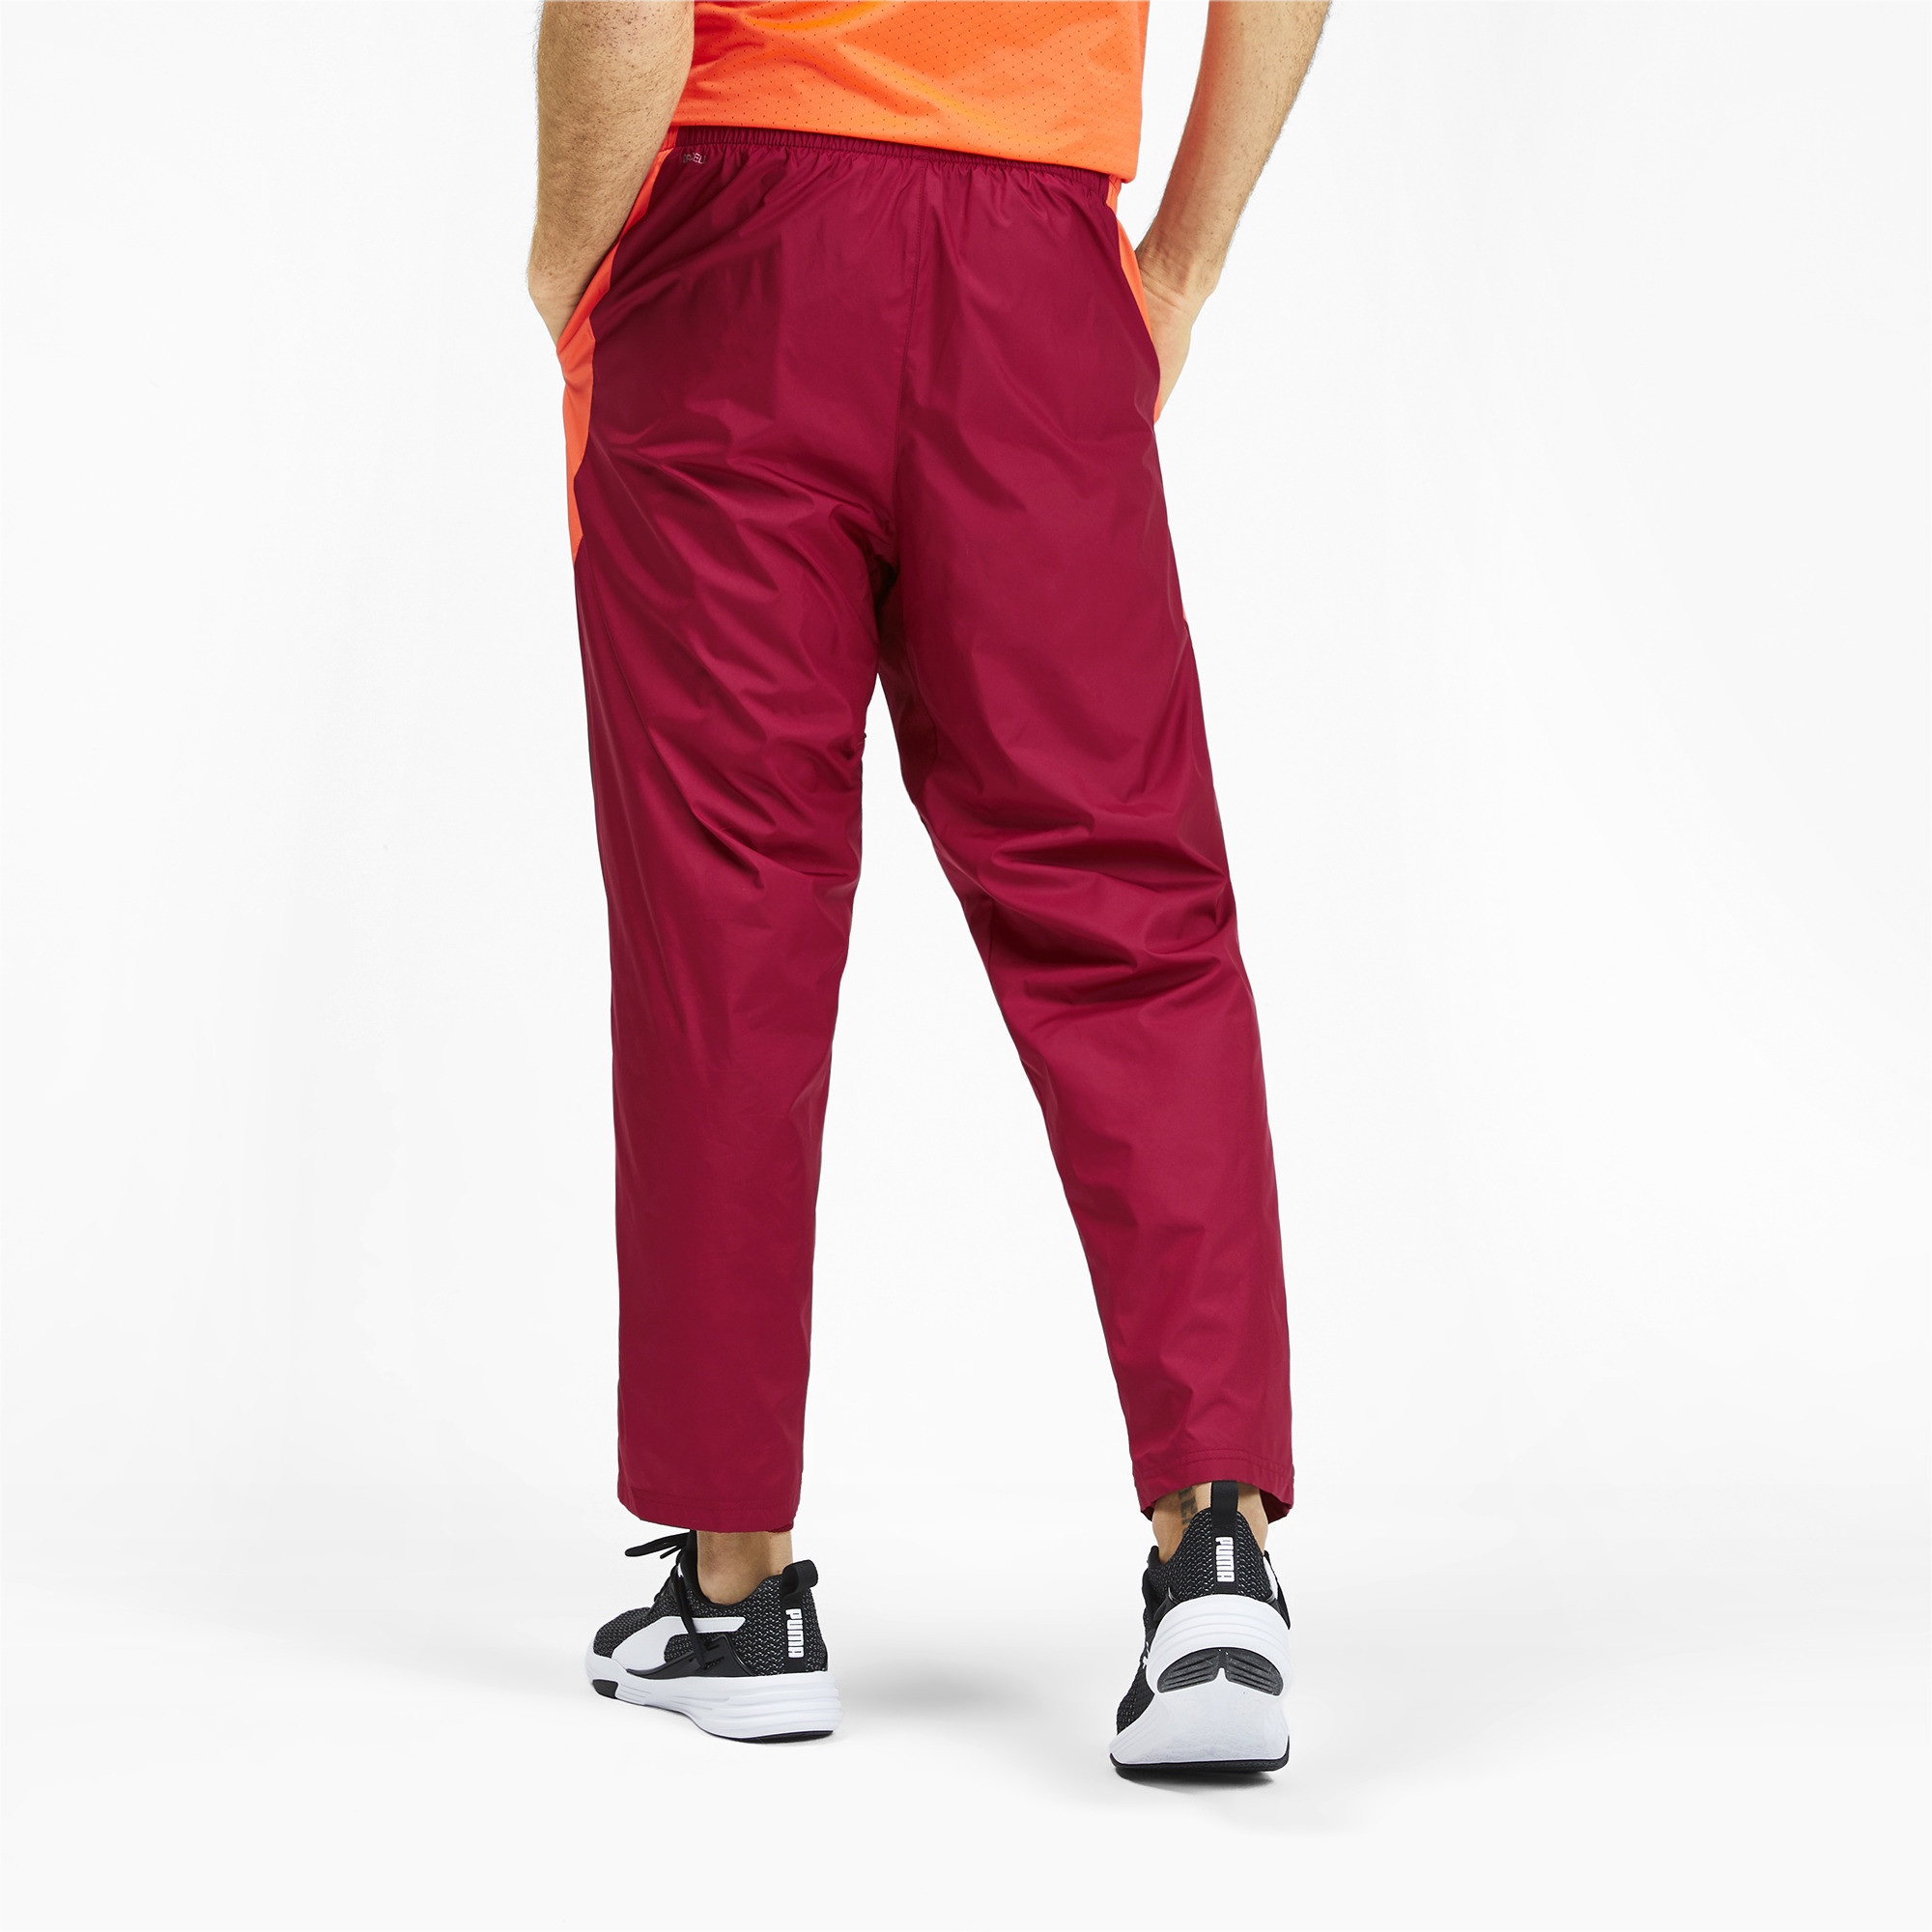 PUMA-Reactive-Men-039-s-Woven-Pants-Men-Woven-Pants-Training miniatura 10